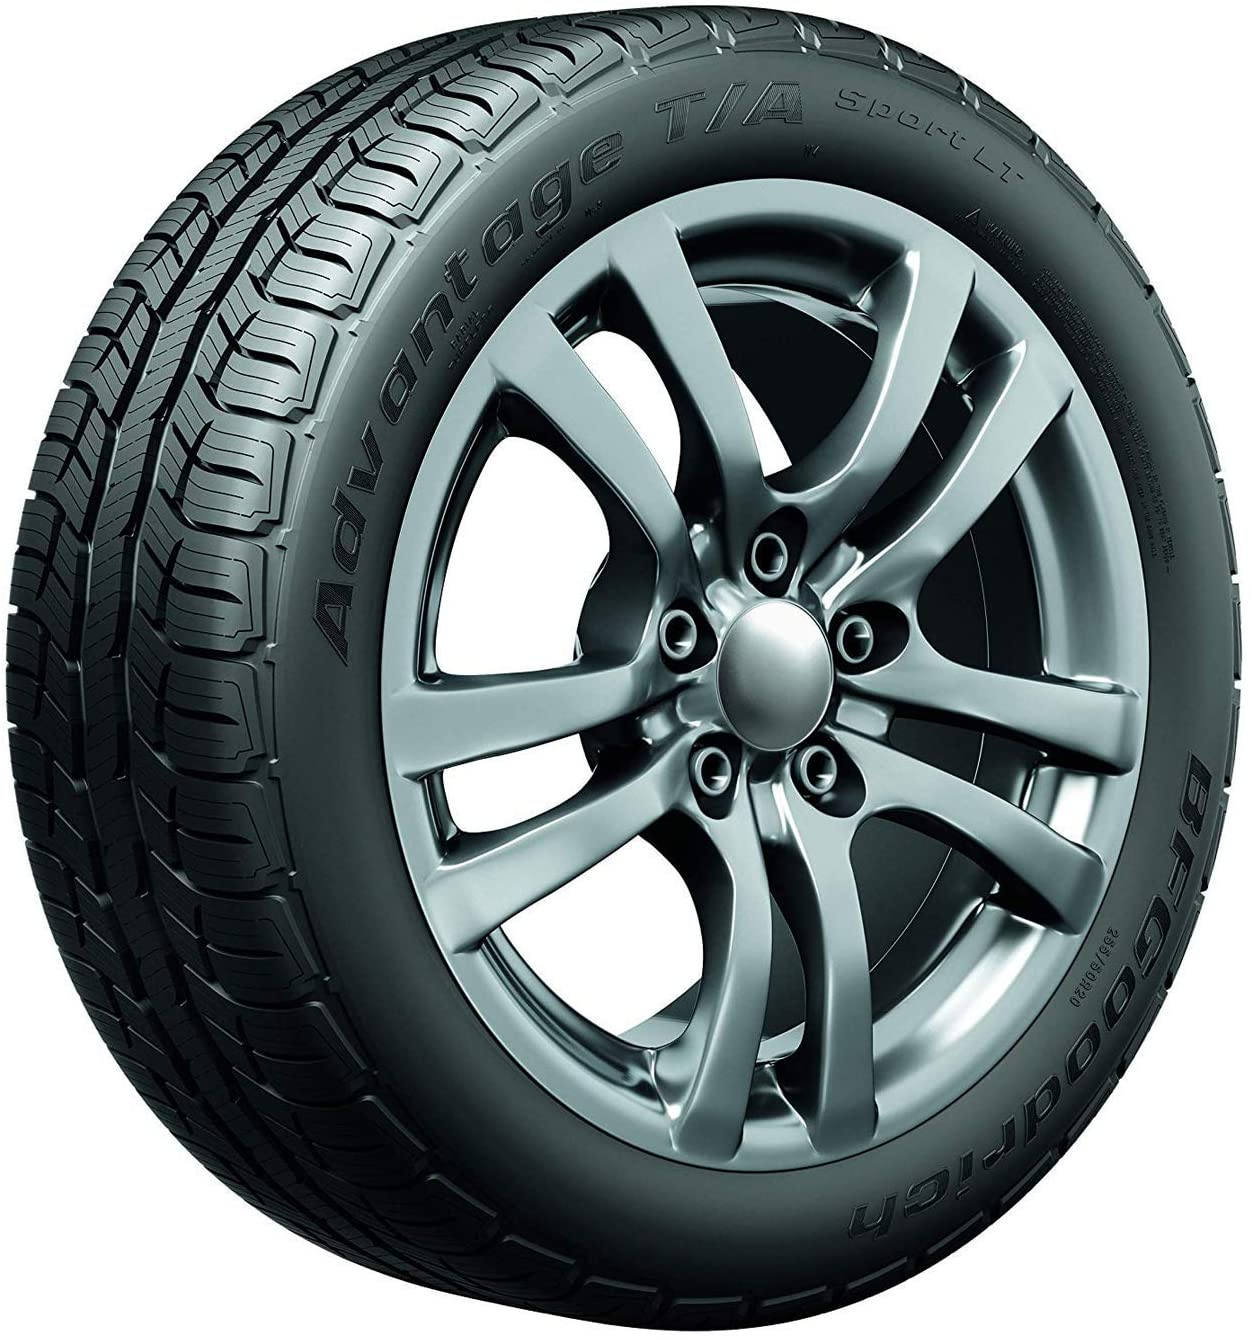 BFGoodrich Advantage T/A Sport LT All-Season Radial Tire-235/60R18 103V